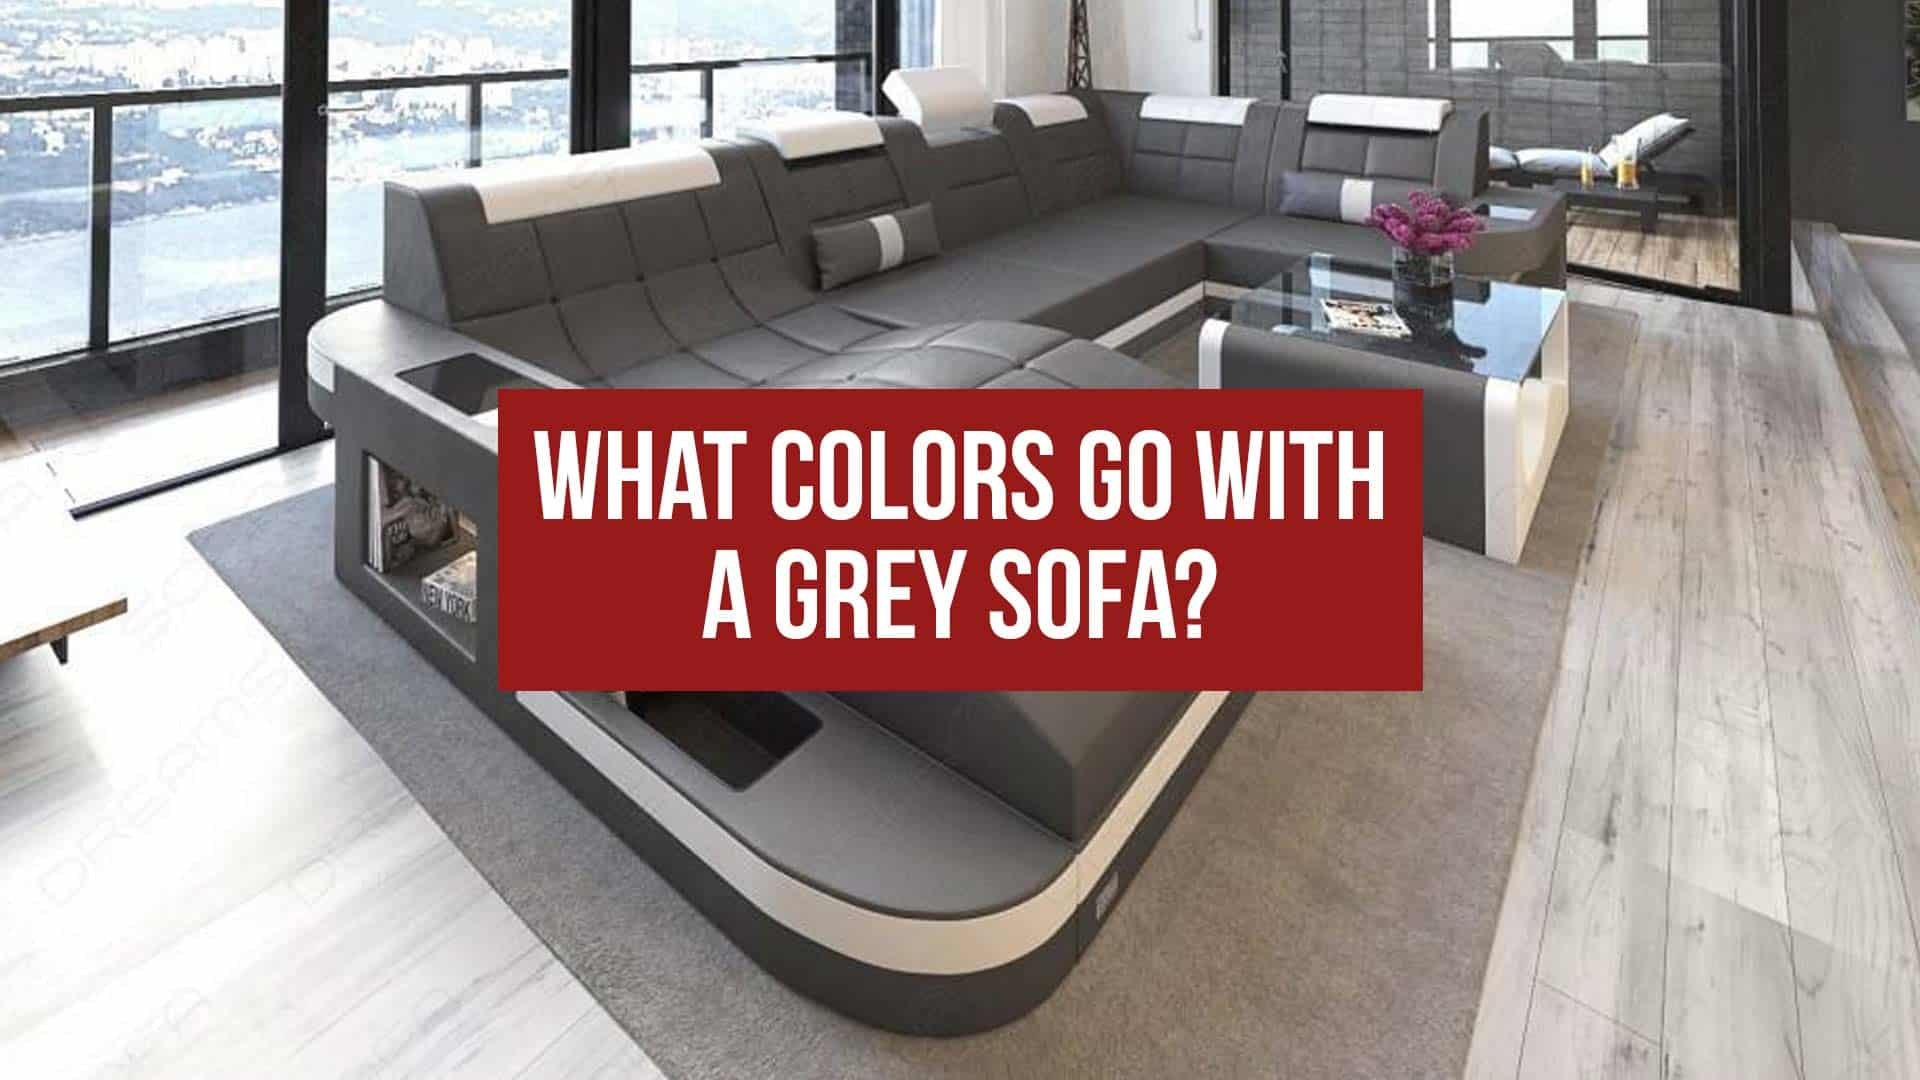 What colors go with a grey sofa?